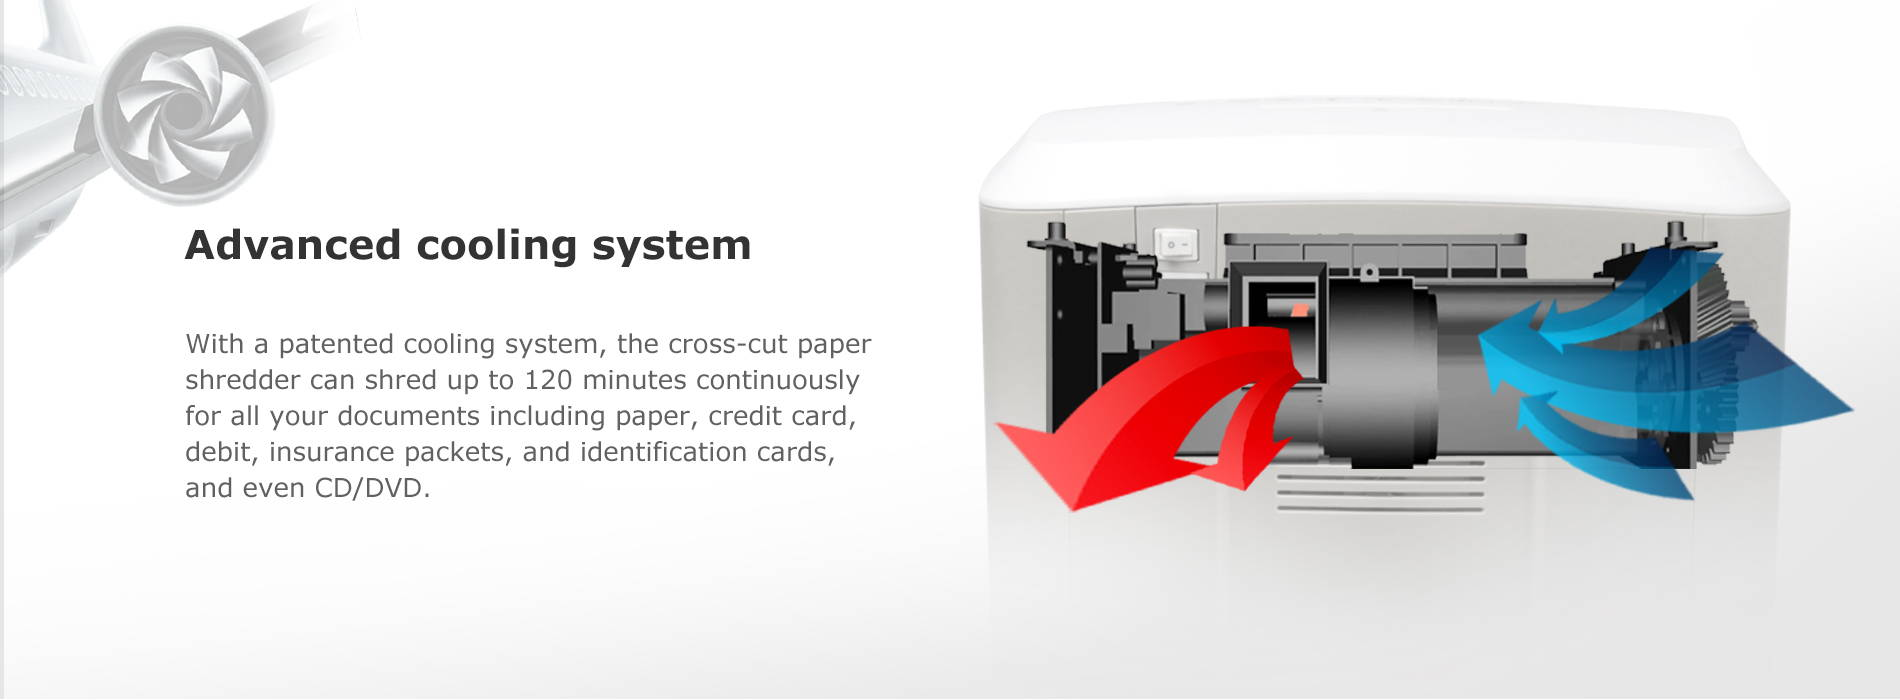 Advanced cooling system  With a patented cooling system, the cross-cut paper shredder can shred up to 120 minutes continuously for all your documents including paper, credit card, debit, insurance packets, and identification cards, and even CD/DVD.